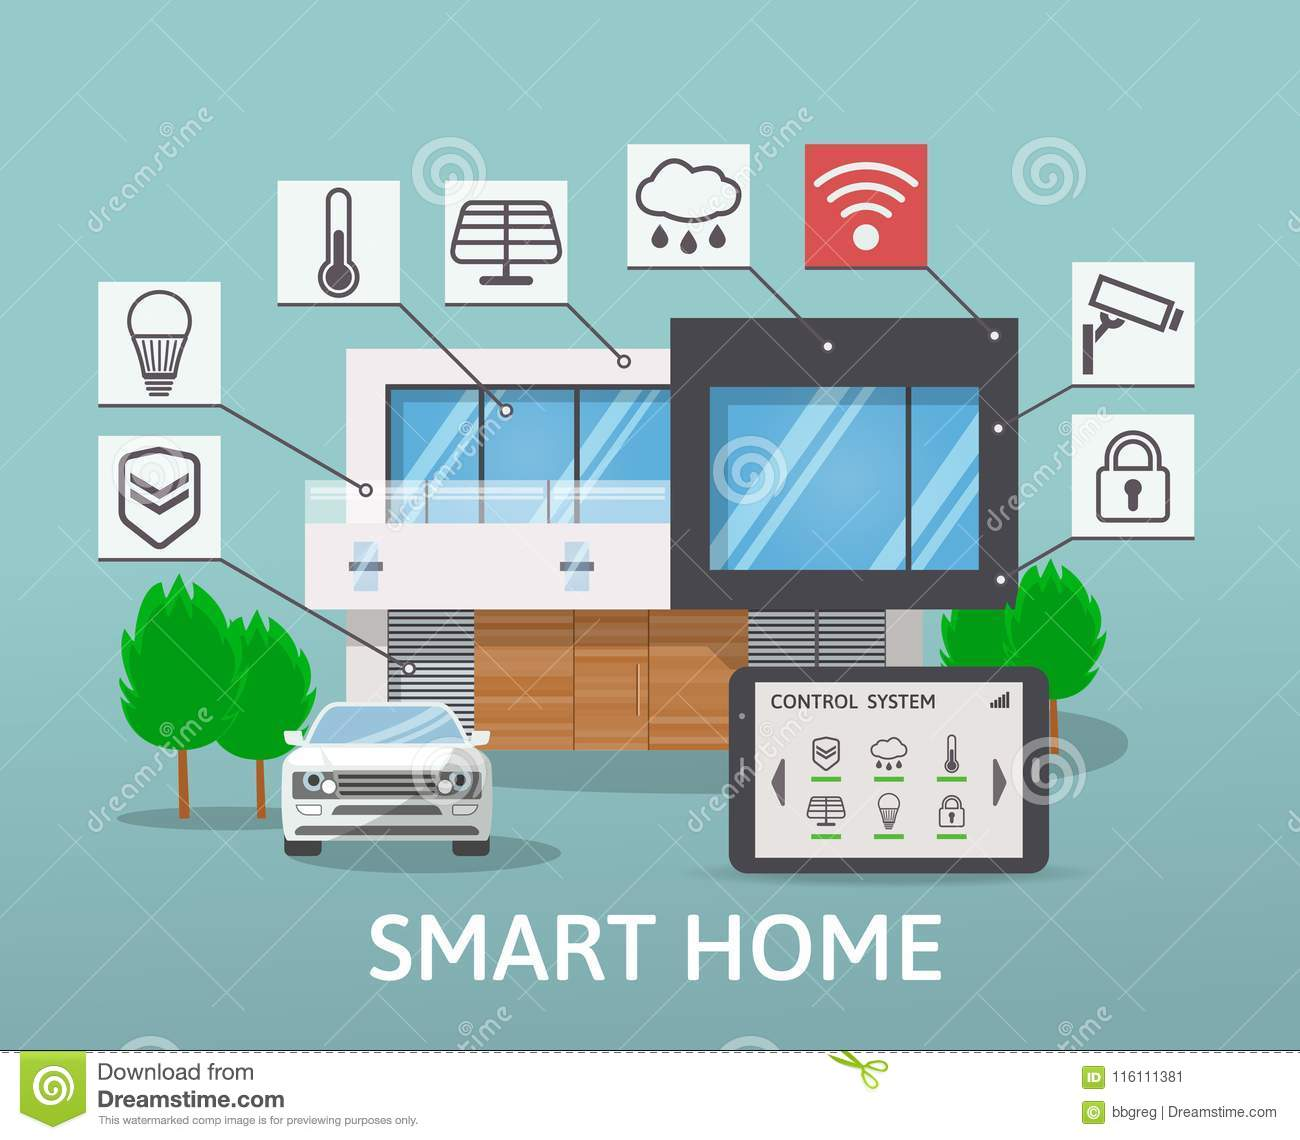 modern smart house with car infographic banner flat design style concept technology system. Black Bedroom Furniture Sets. Home Design Ideas